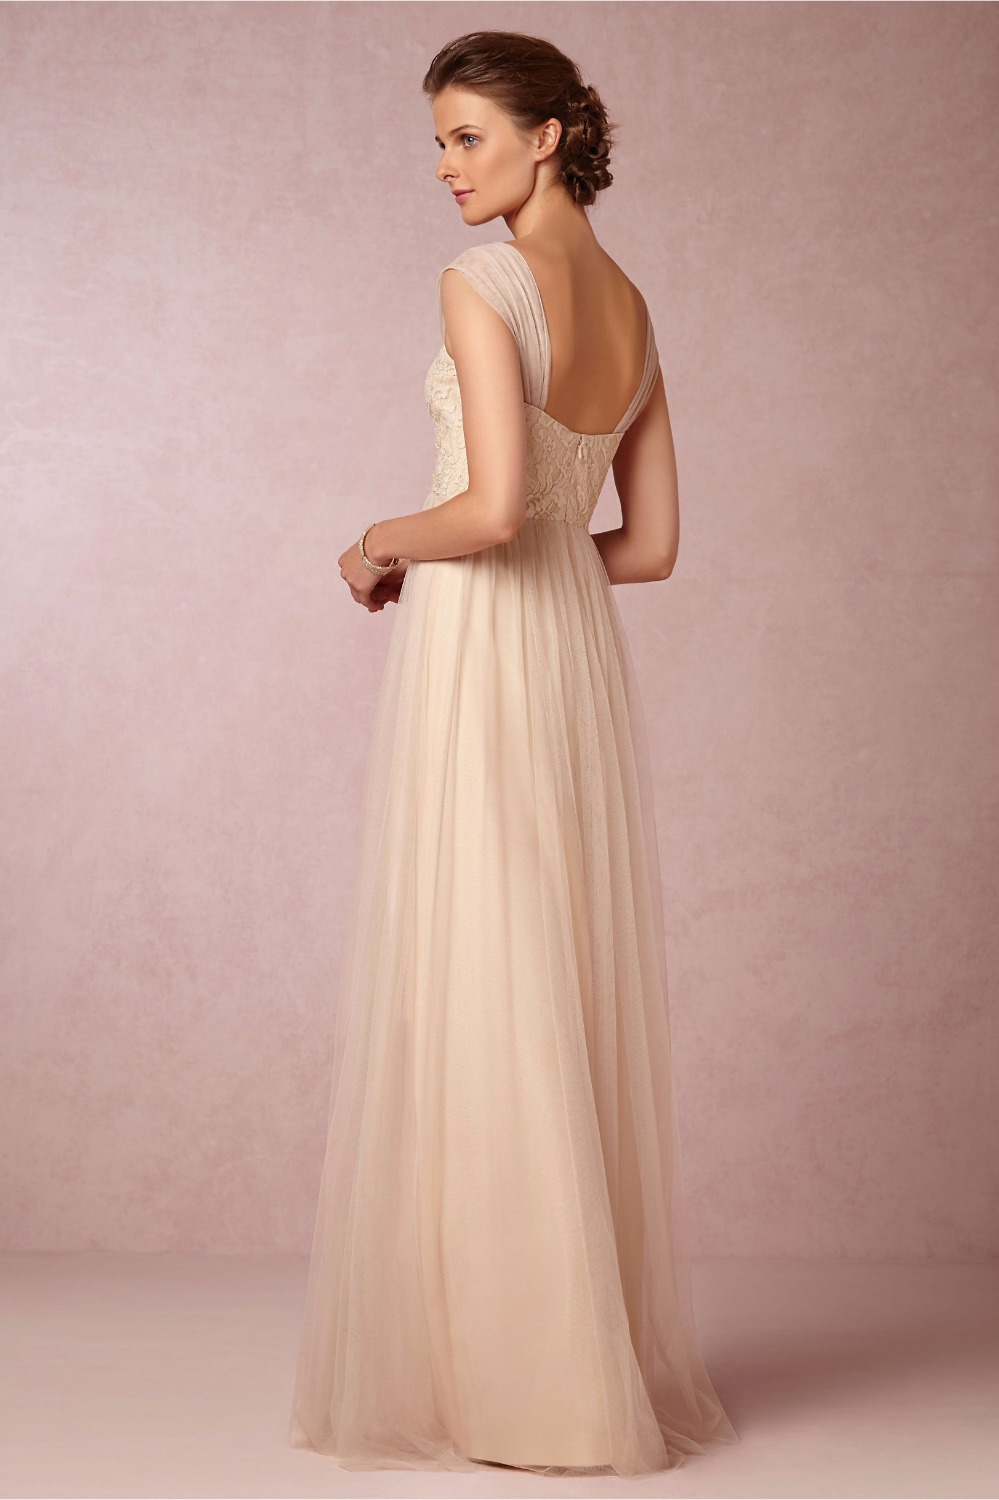 Cheap 2016 long nude color lace bridesmaid dress with cap sleeve a cheap 2016 long nude color lace bridesmaid dress with cap sleeve a line sexy sweetheart tulle belt sashes wedding party dresses in bridesmaid dresses from ombrellifo Images